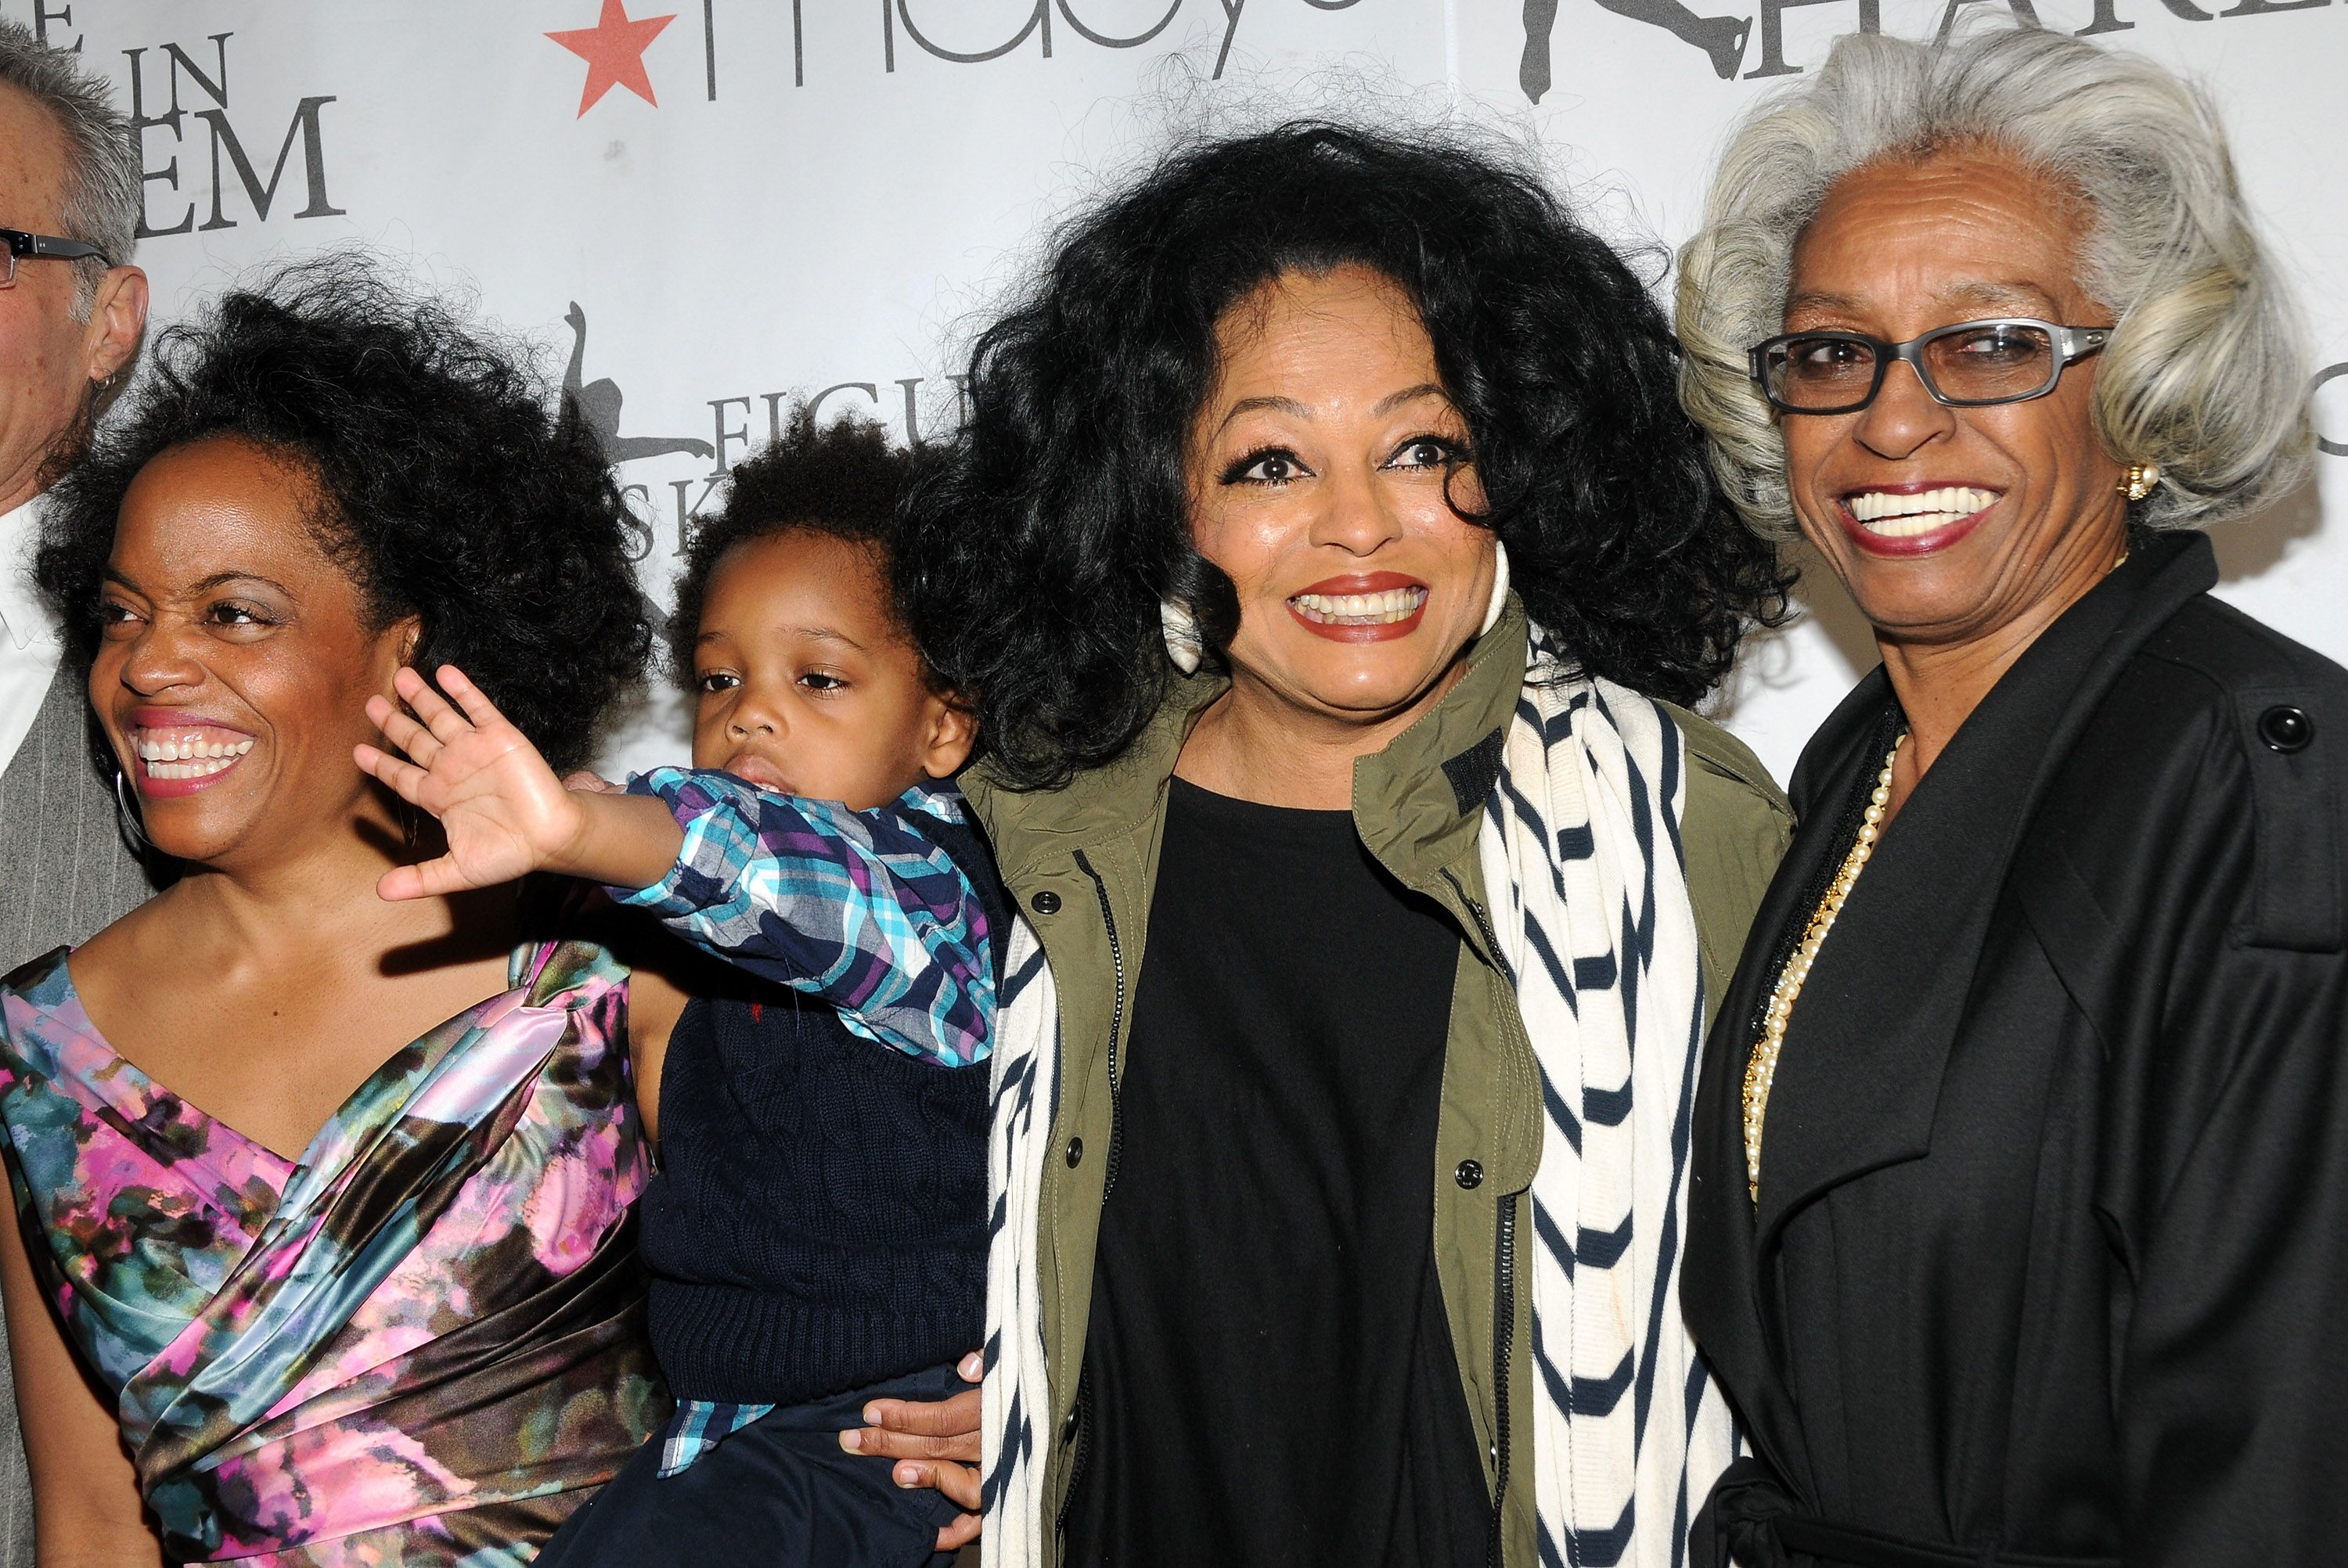 Rhonda Ross, Raif-Henok Emmanuel Kendrick, Diana Ross and Dr. Barbara Ross-Lee attend the 2012 Skating with the Stars gala at Wollman Rink - Central Park on April 2, 2012 in New York City.   Source: Getty Images